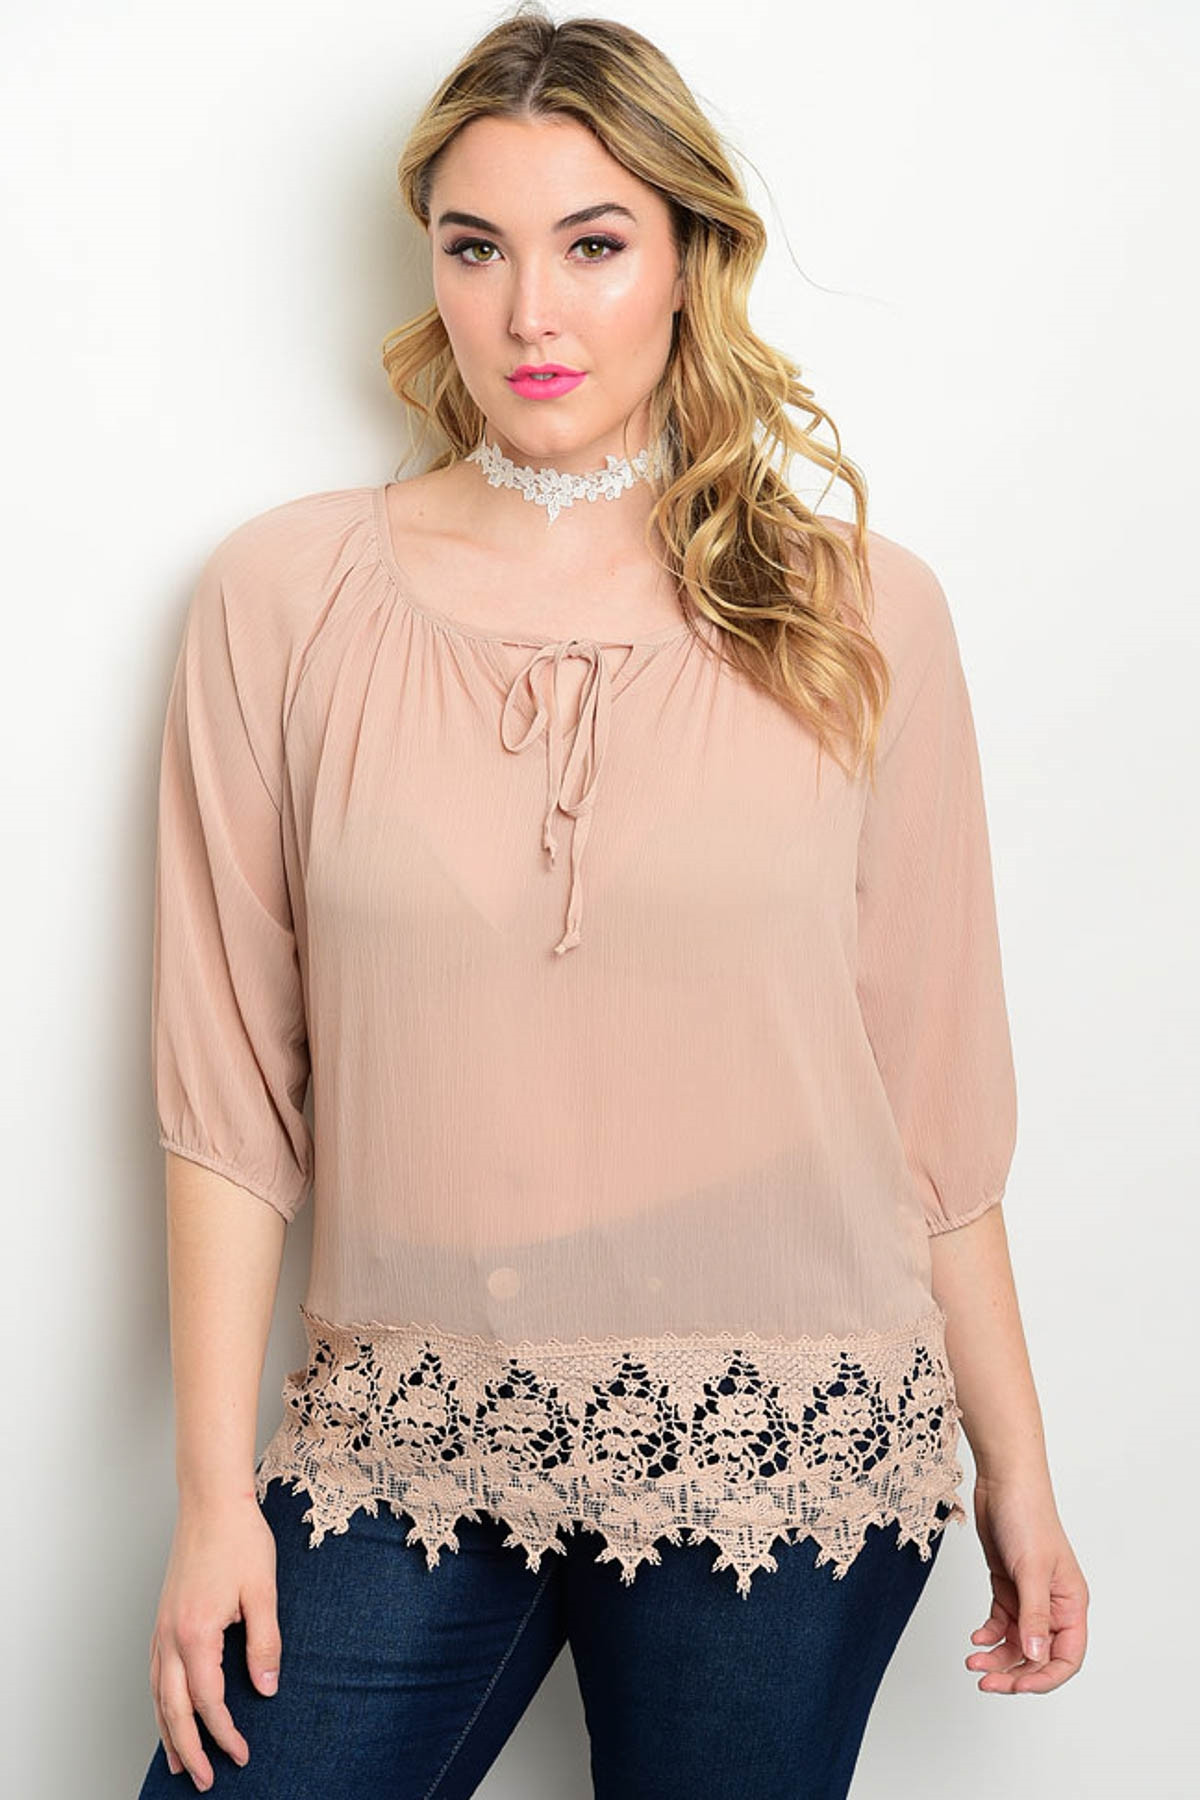 Plus Size Crochet Awesome S10 20 5 T158x Tan Plus Size Crochet top 2 2 2 Of Gorgeous 50 Pictures Plus Size Crochet